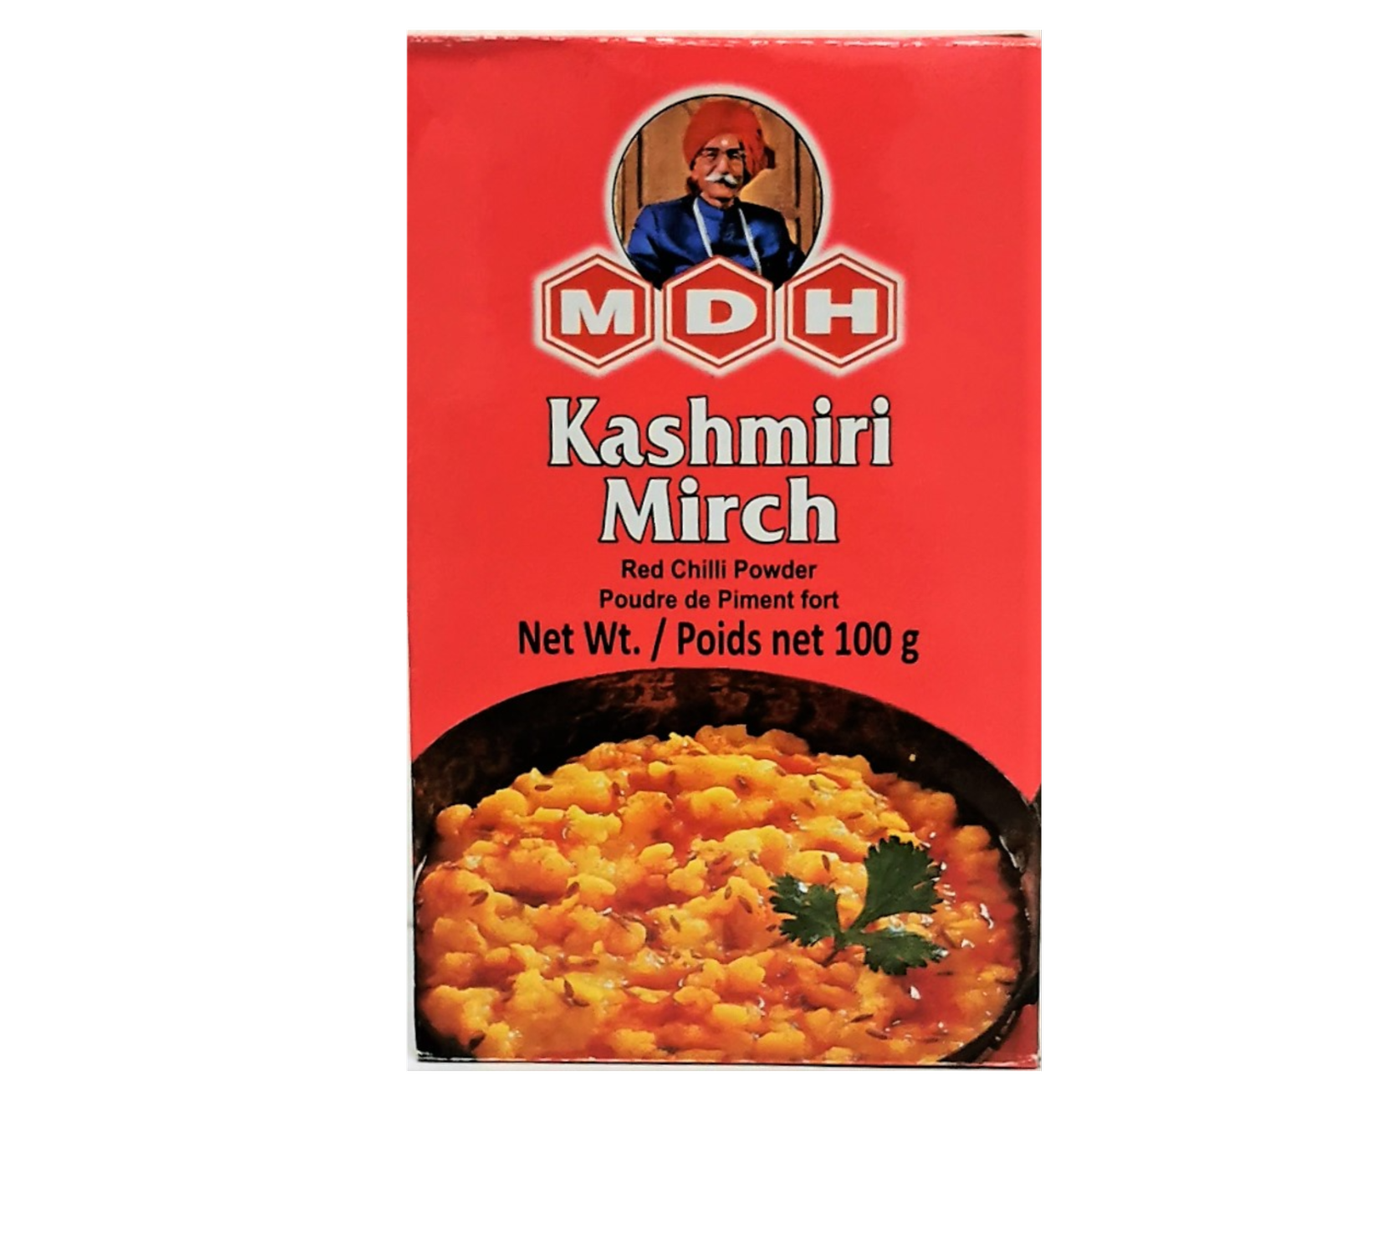 MDH Kashmiri Mirch Red Chilli Powder